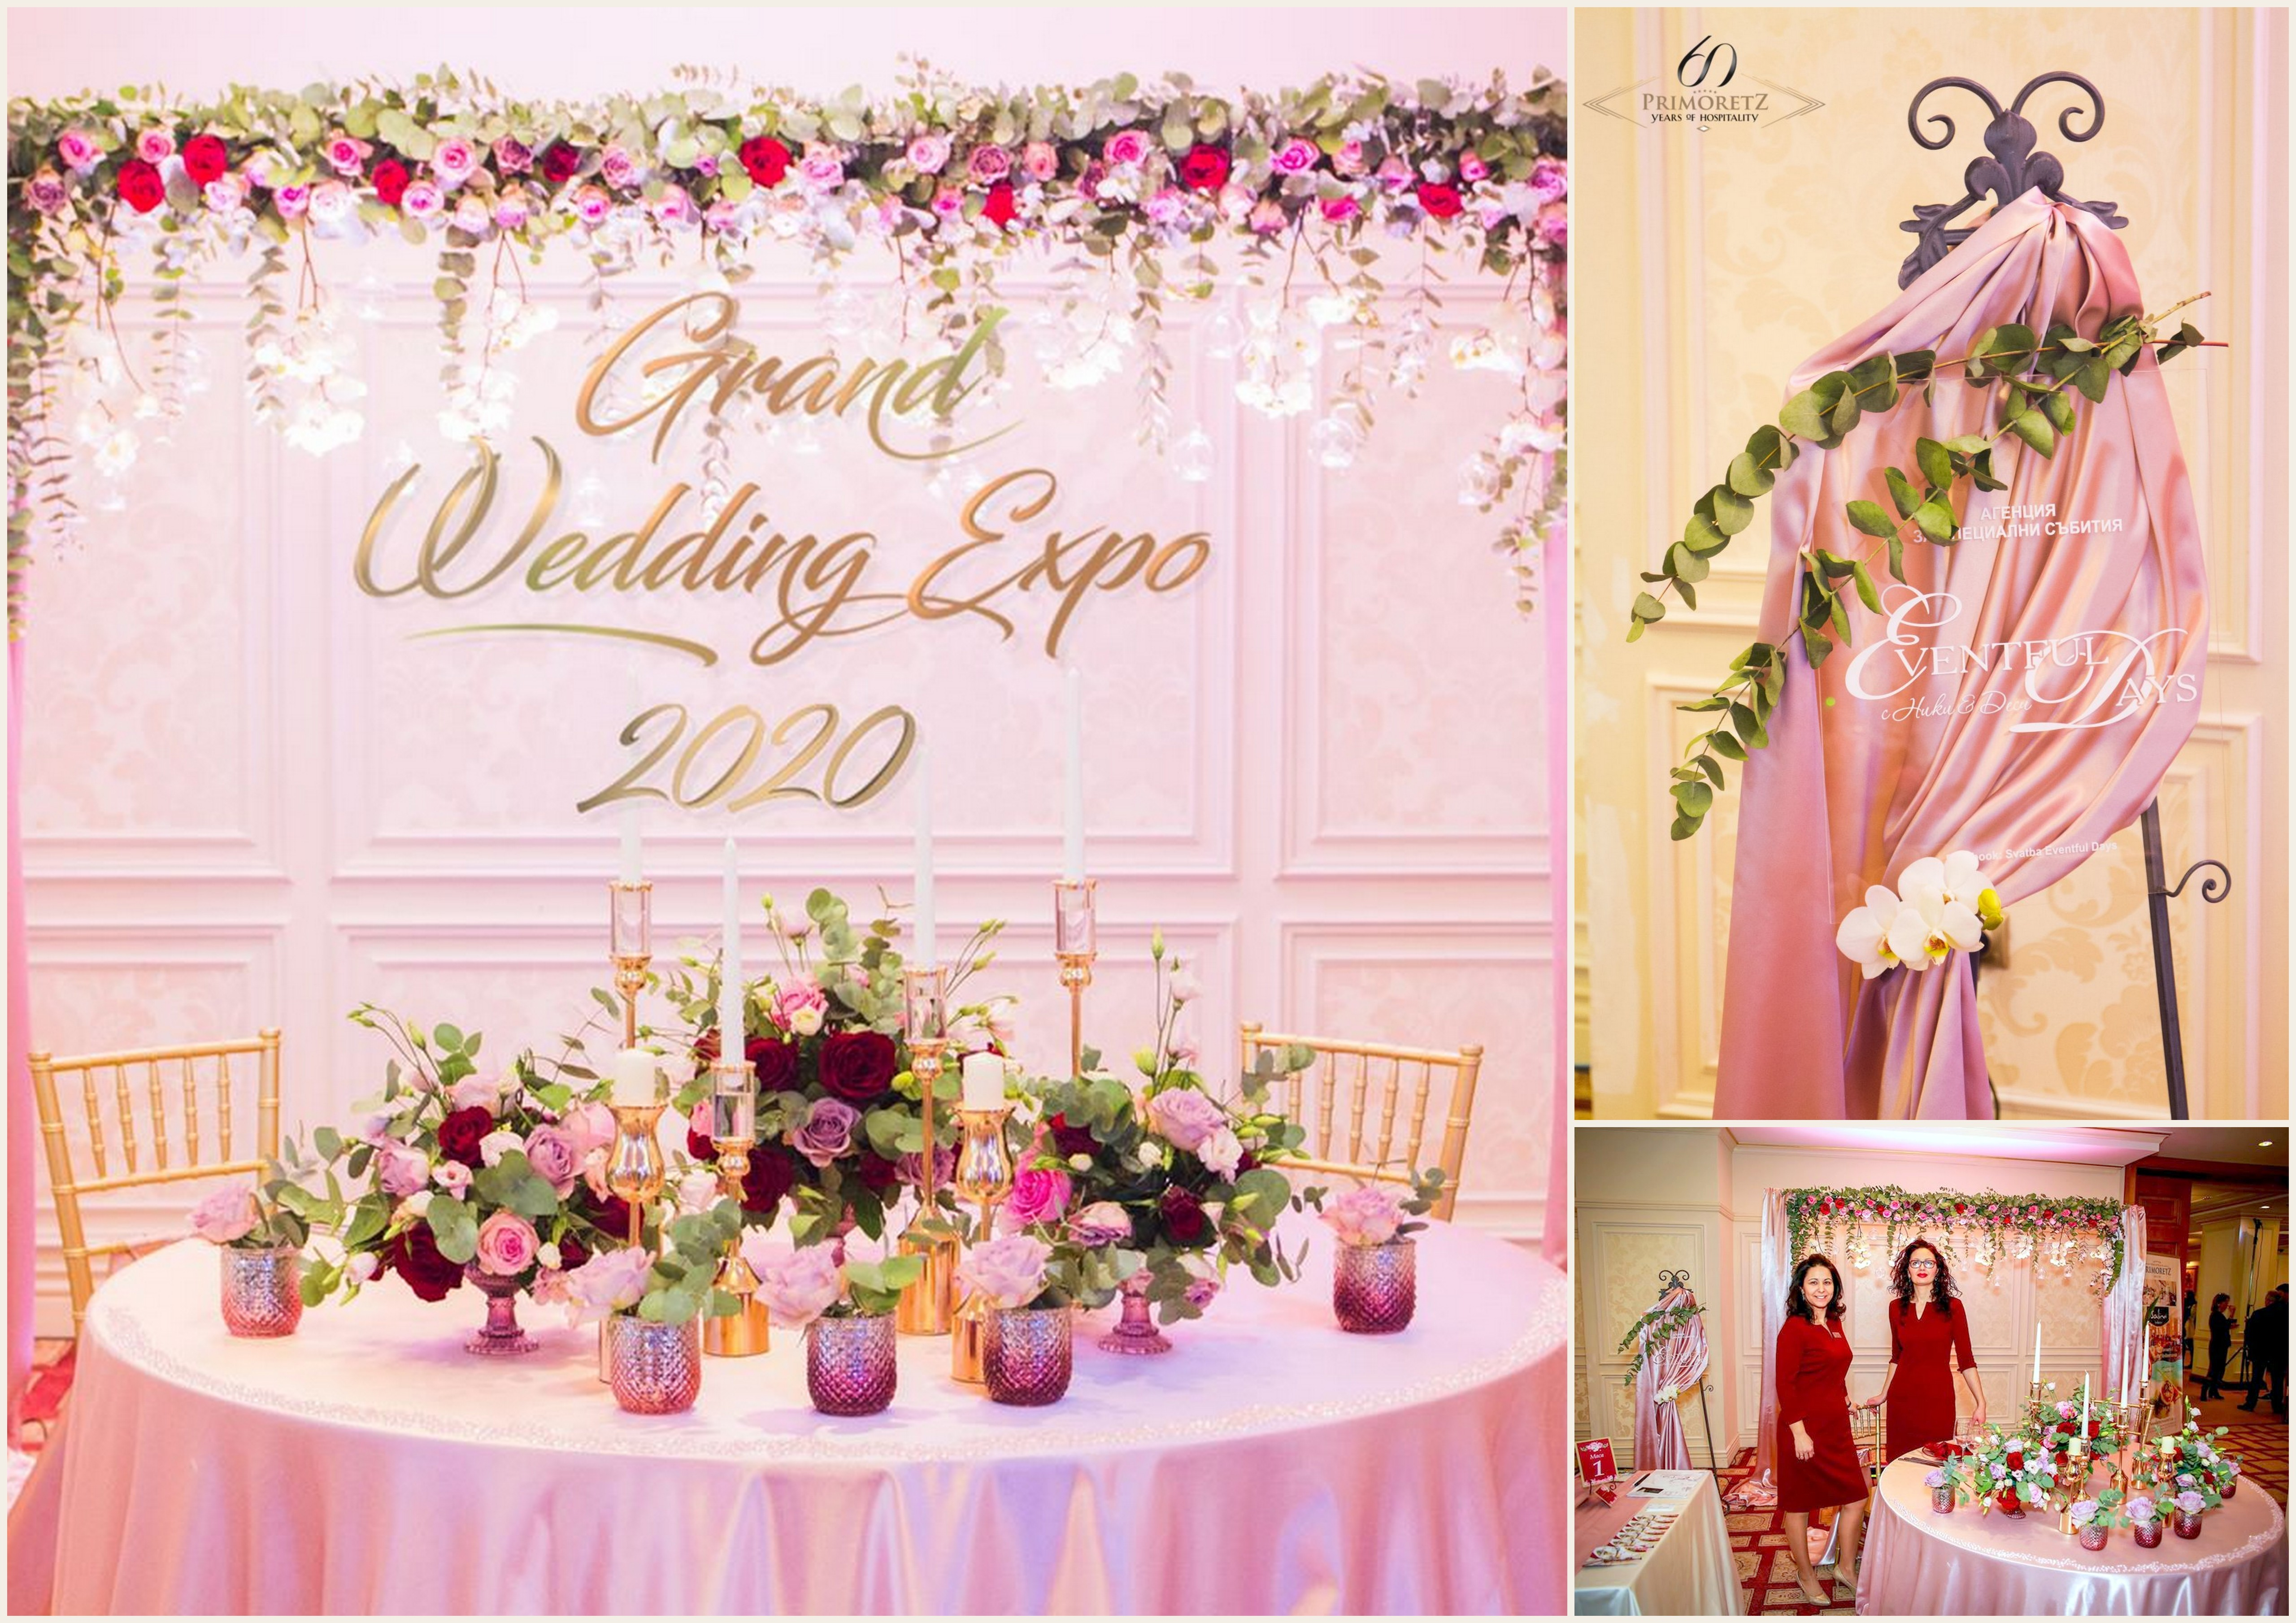 Grand Wedding Expo 2020